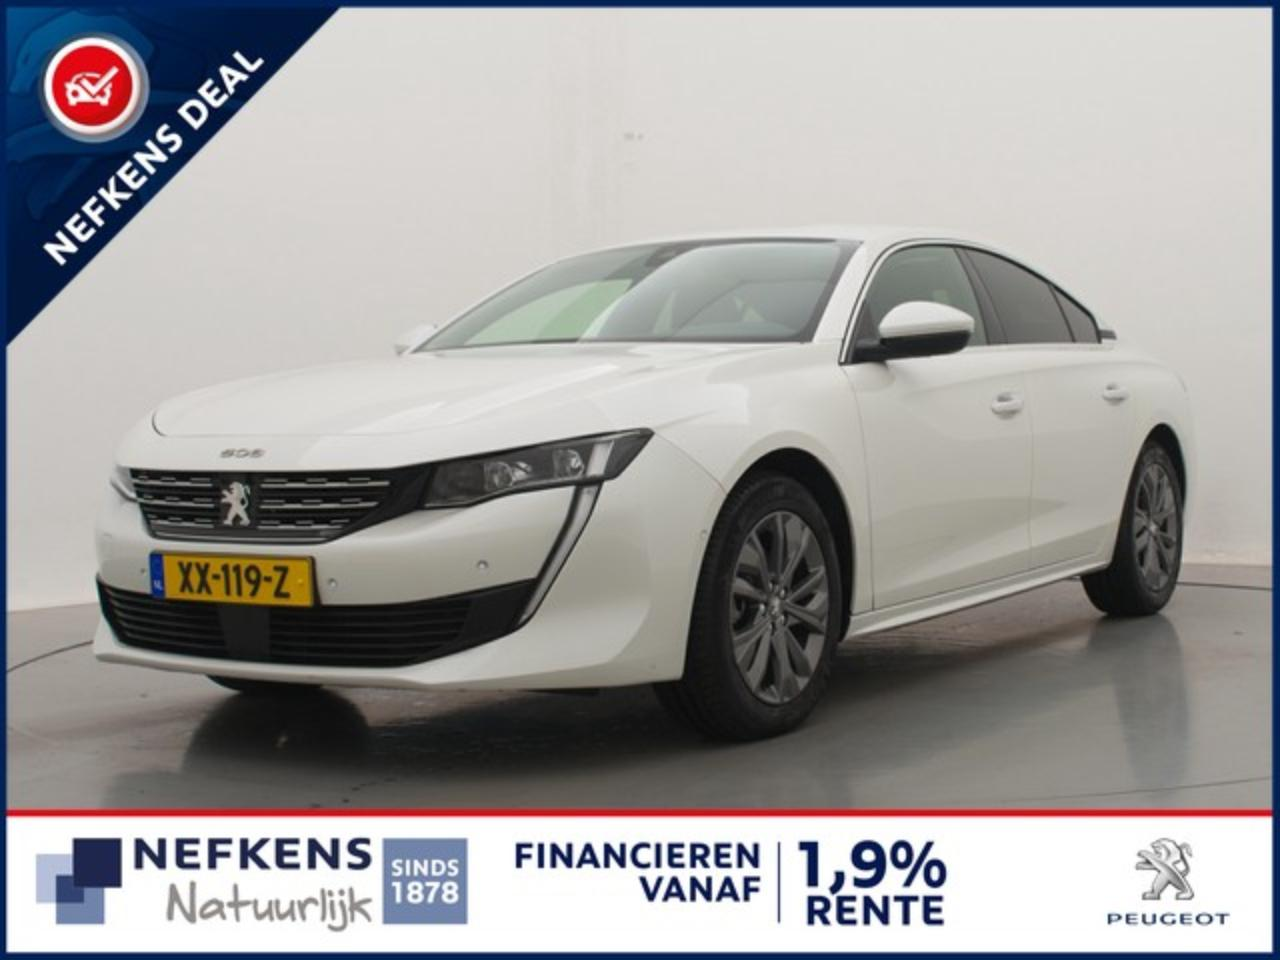 Peugeot 508 1.6 180pk EAT8 Automaat Allure | Camera | Navigati